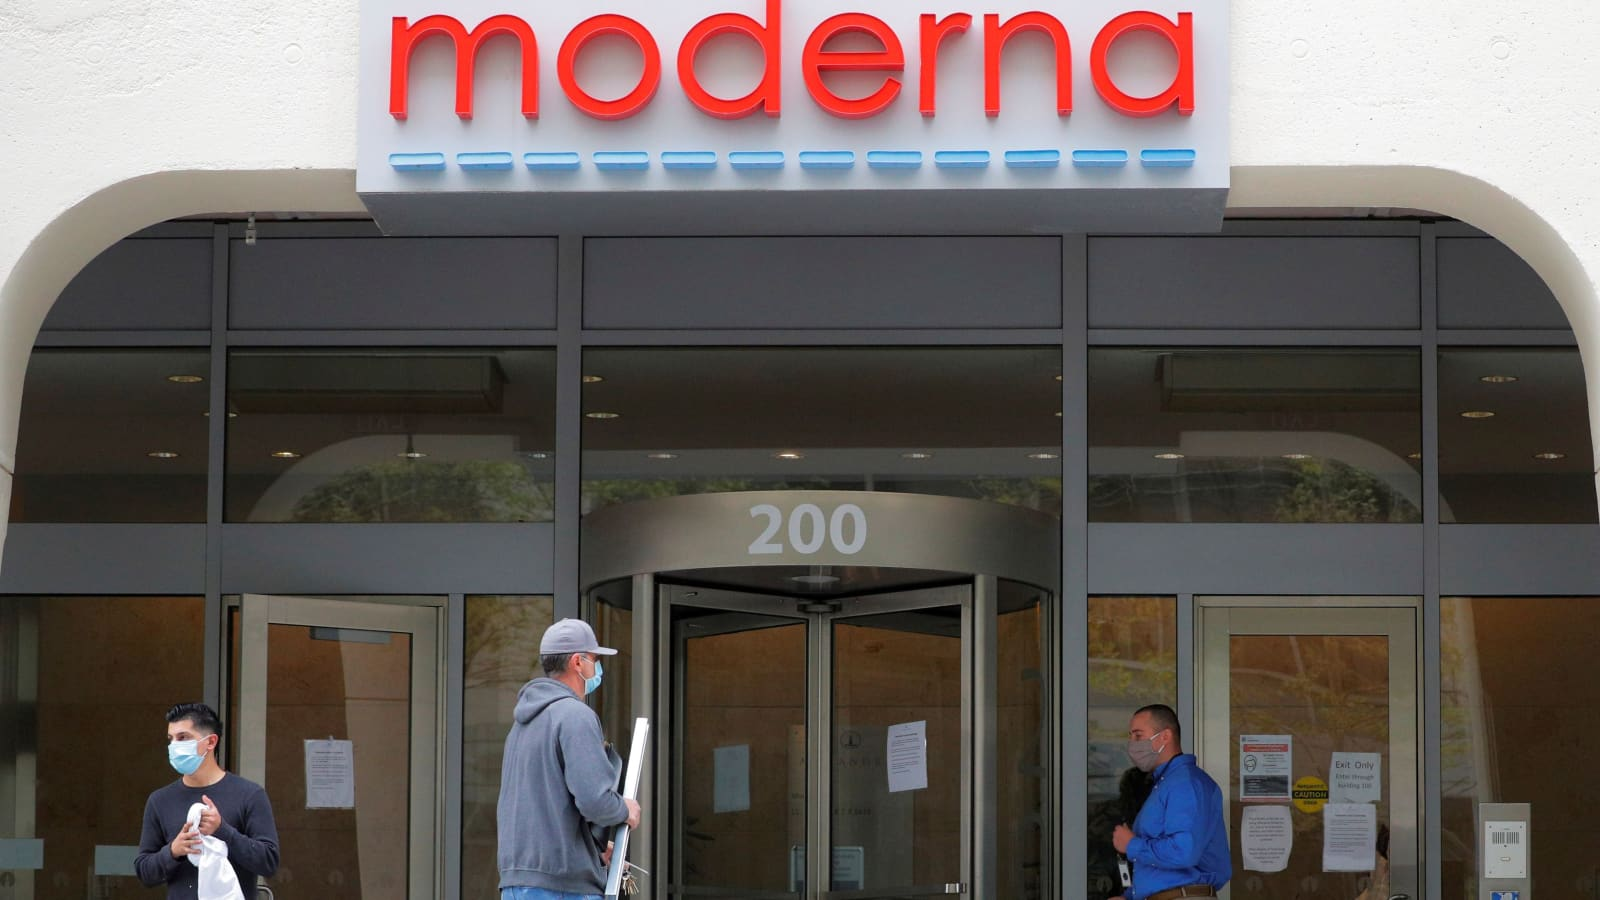 Moderna stock surges after company announces promising coronavirus vaccine trial data